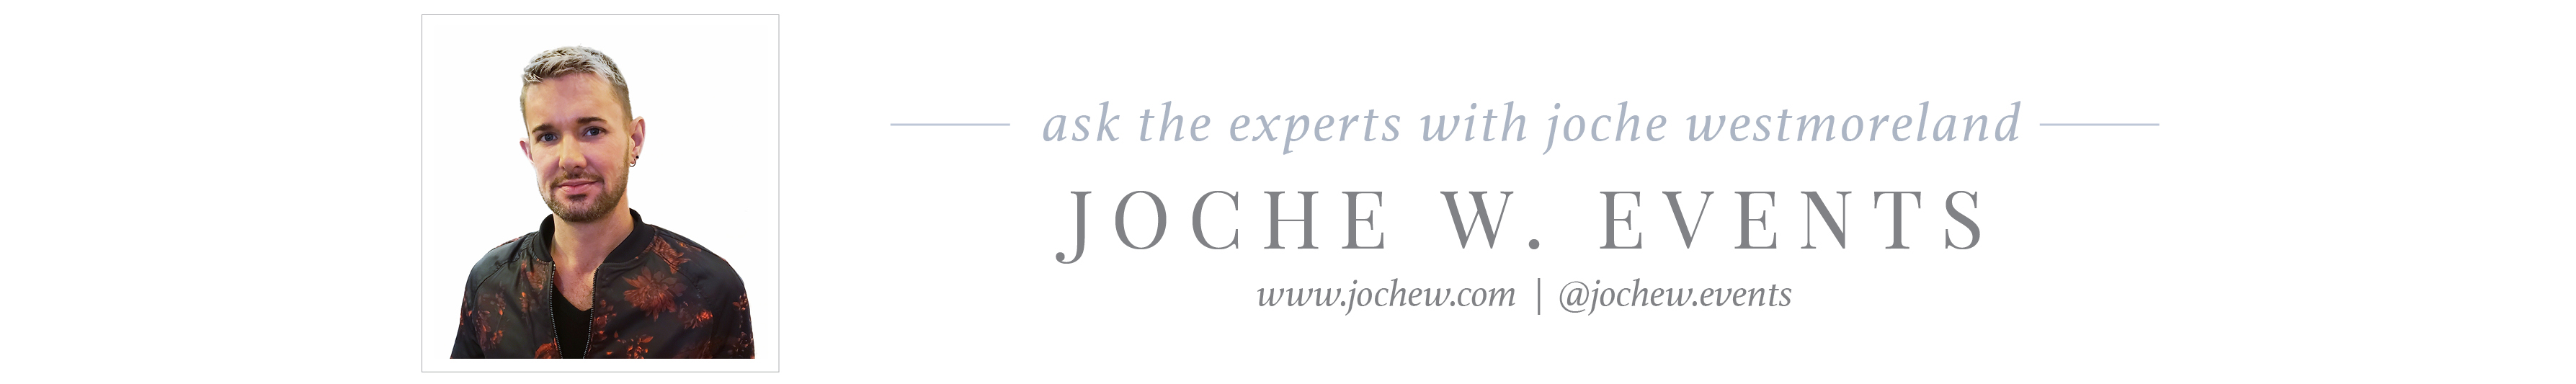 joche w events wedding planner florist